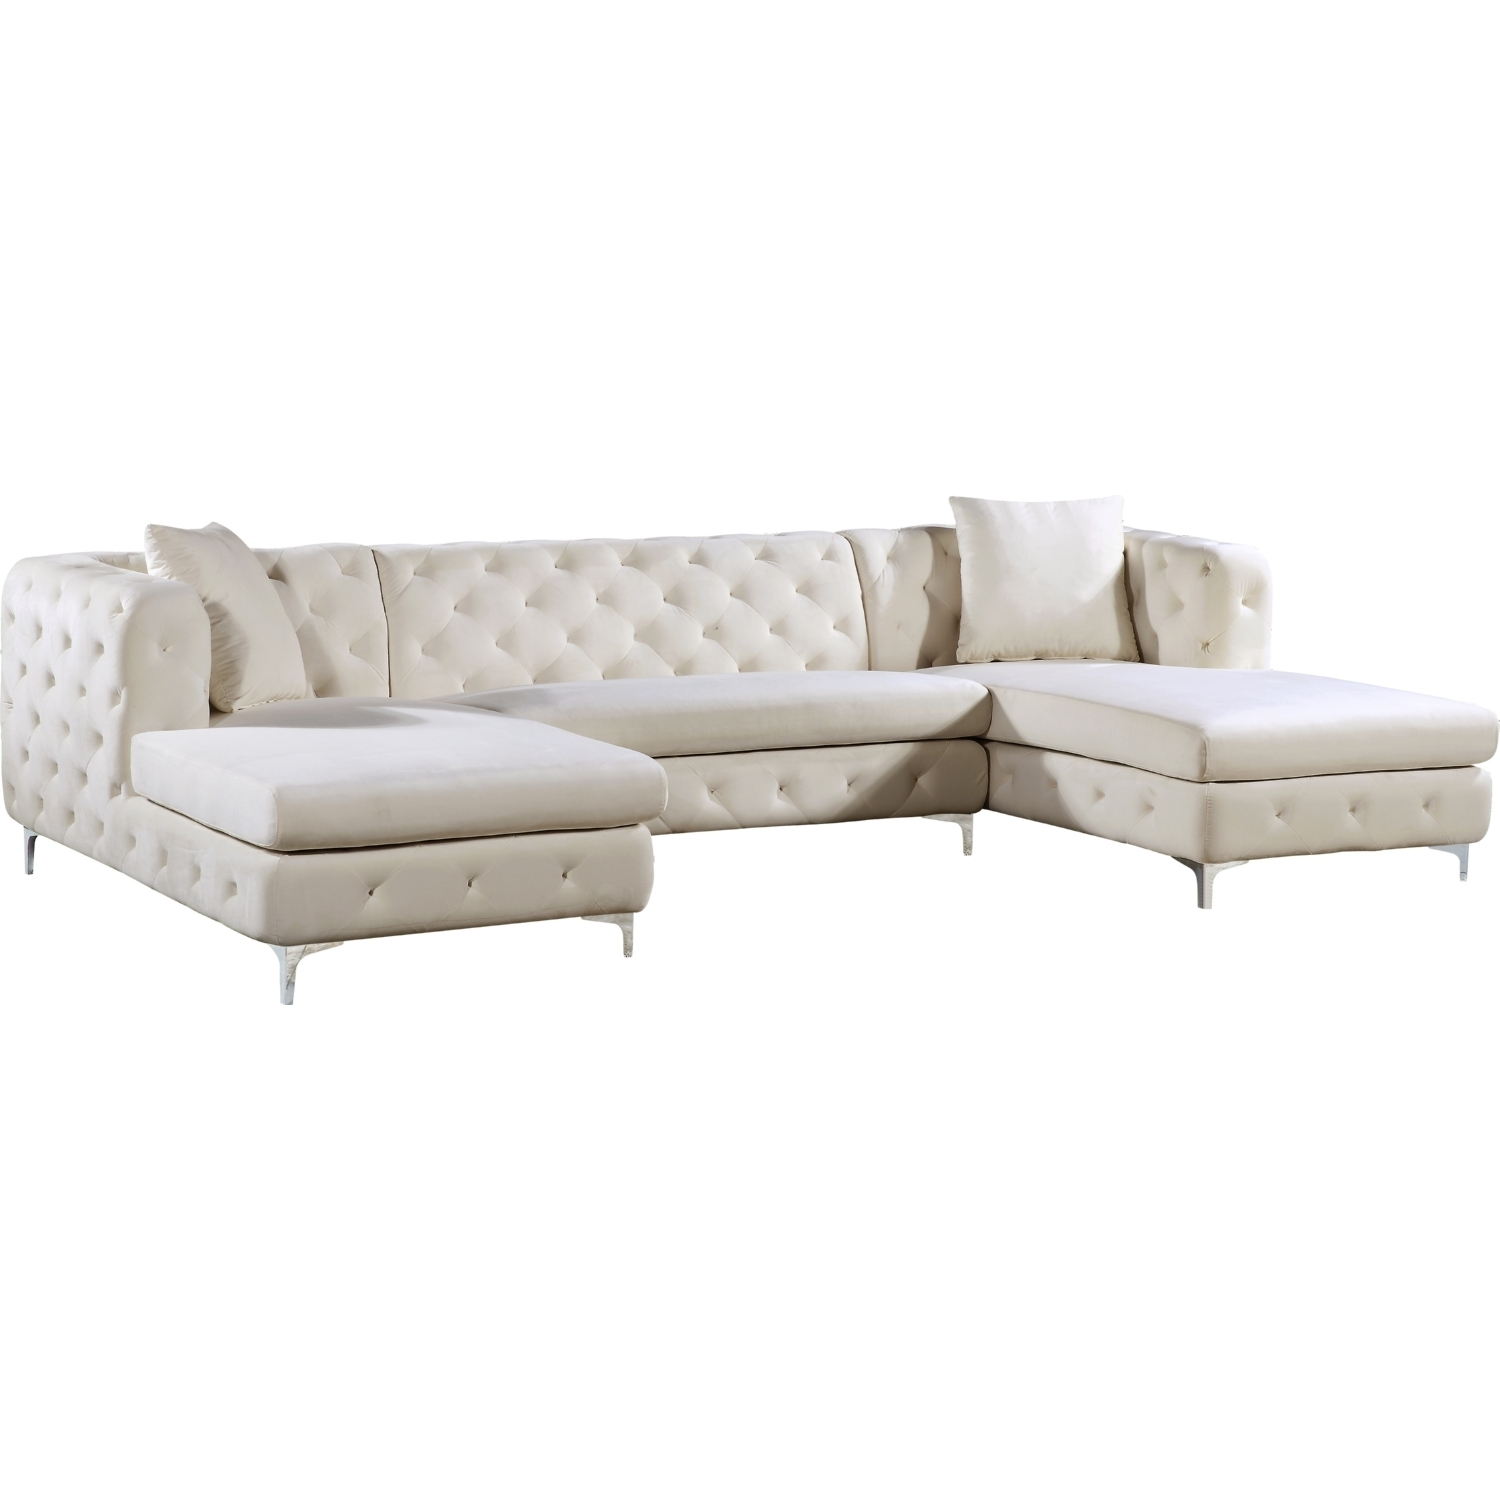 2018 Latest Tufted Sectional Sofas With Chaise